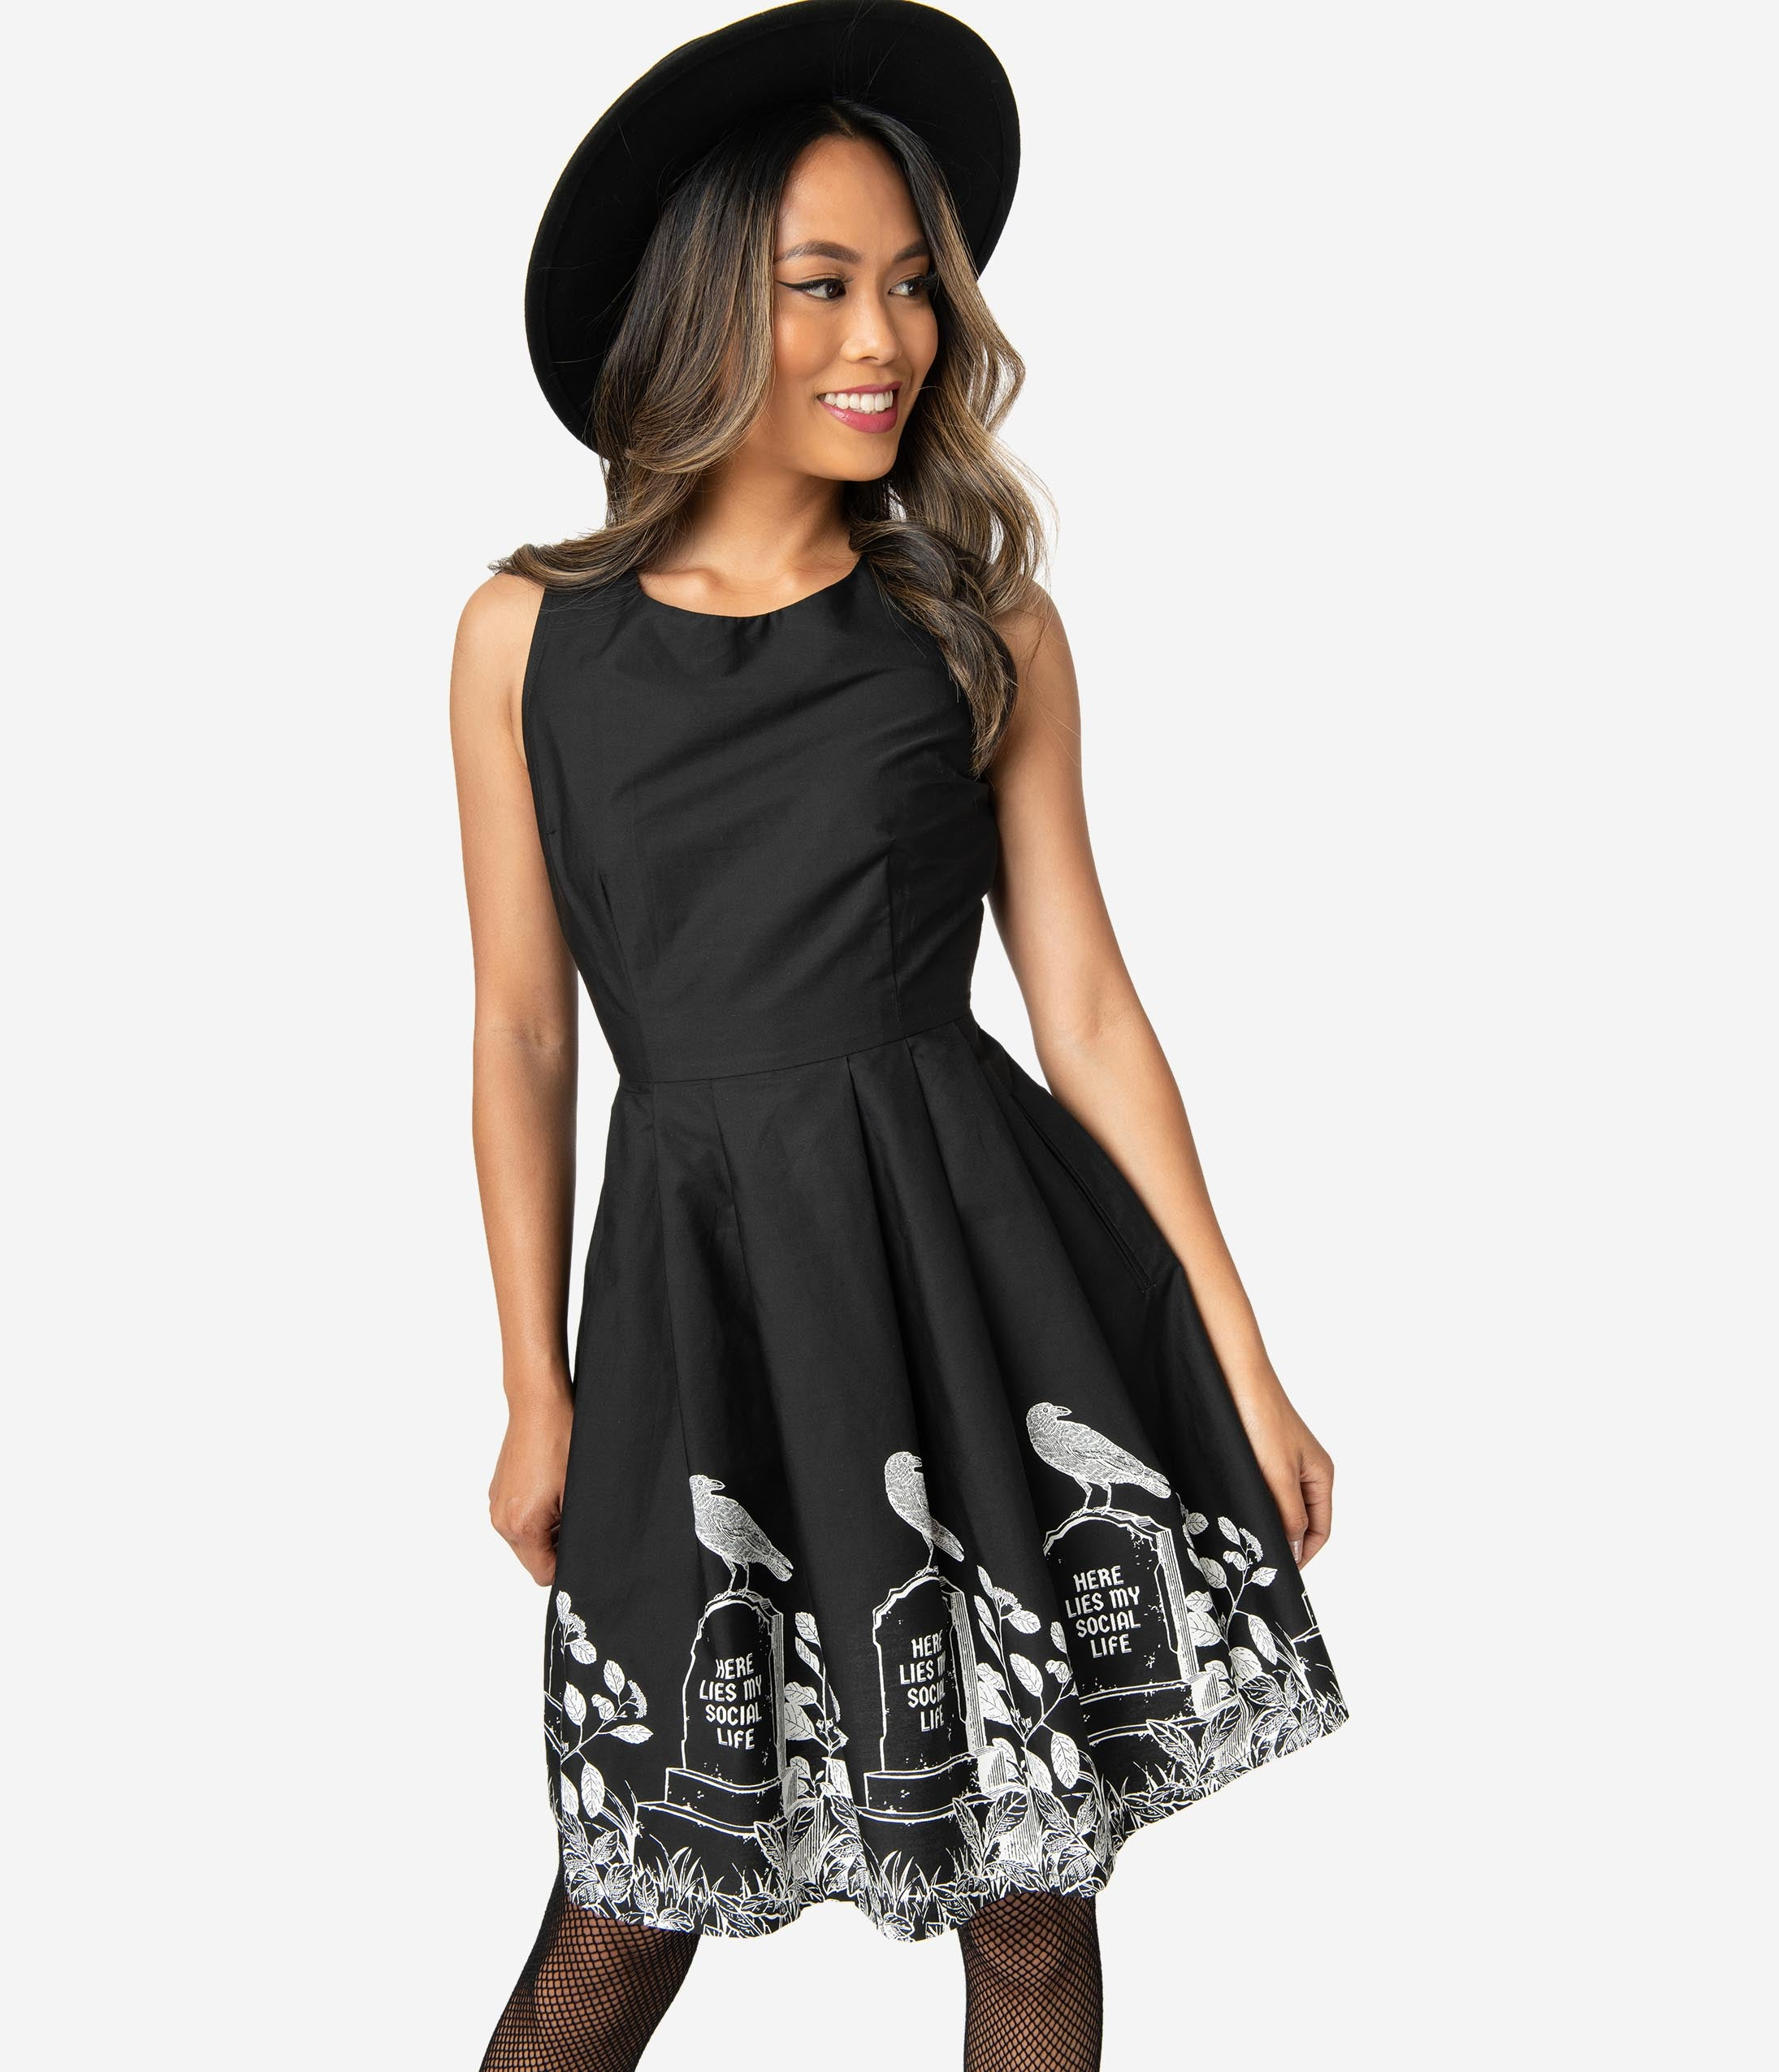 Vintage Retro Halloween Themed Clothing Black Cotton Afterlife Of The Party Sleeveless Fit  Flare Dress $88.00 AT vintagedancer.com